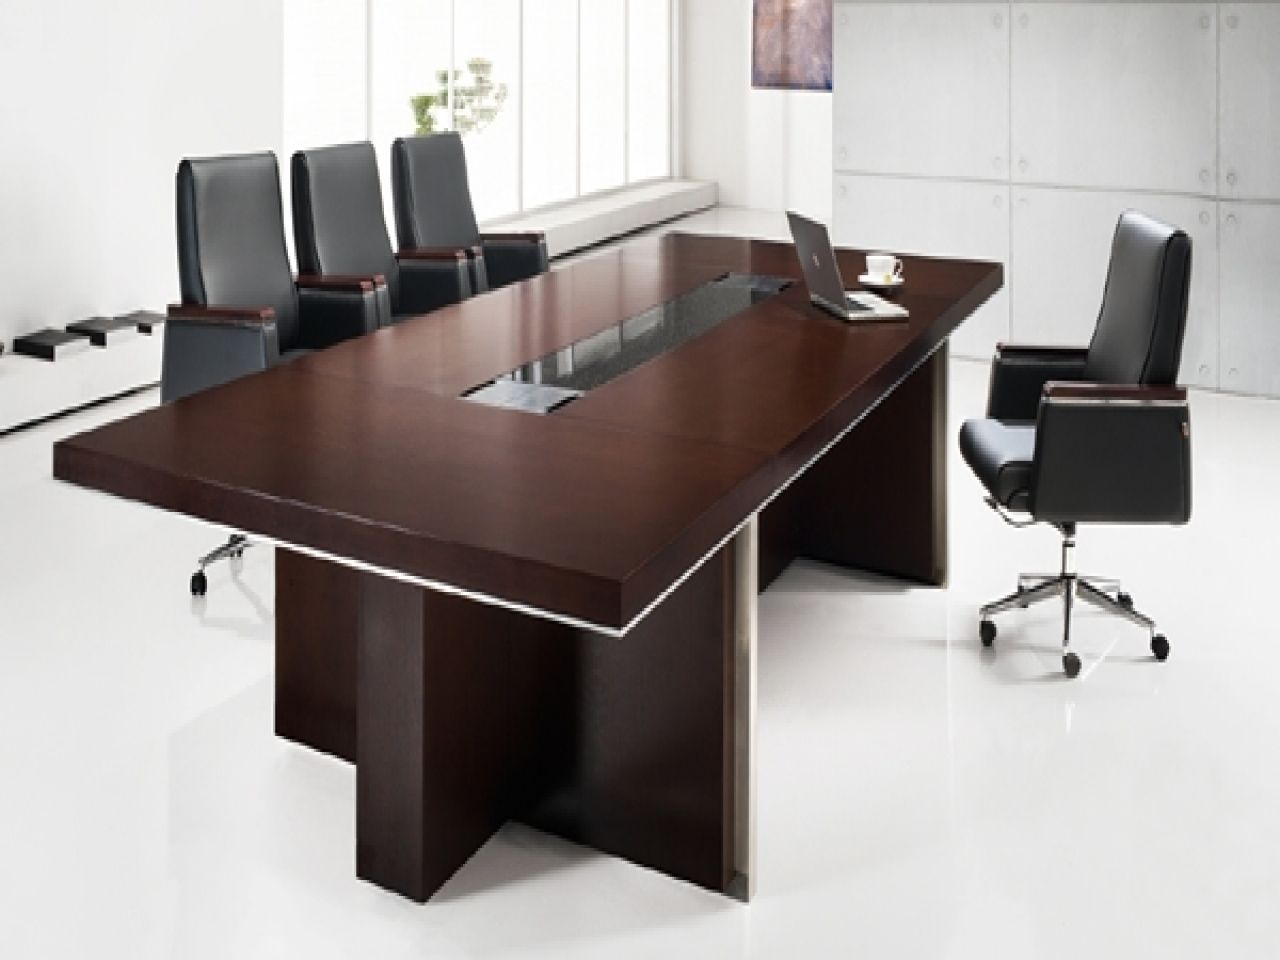 Round Office Tables Home Office Furniture Images Check More At - Large round office table